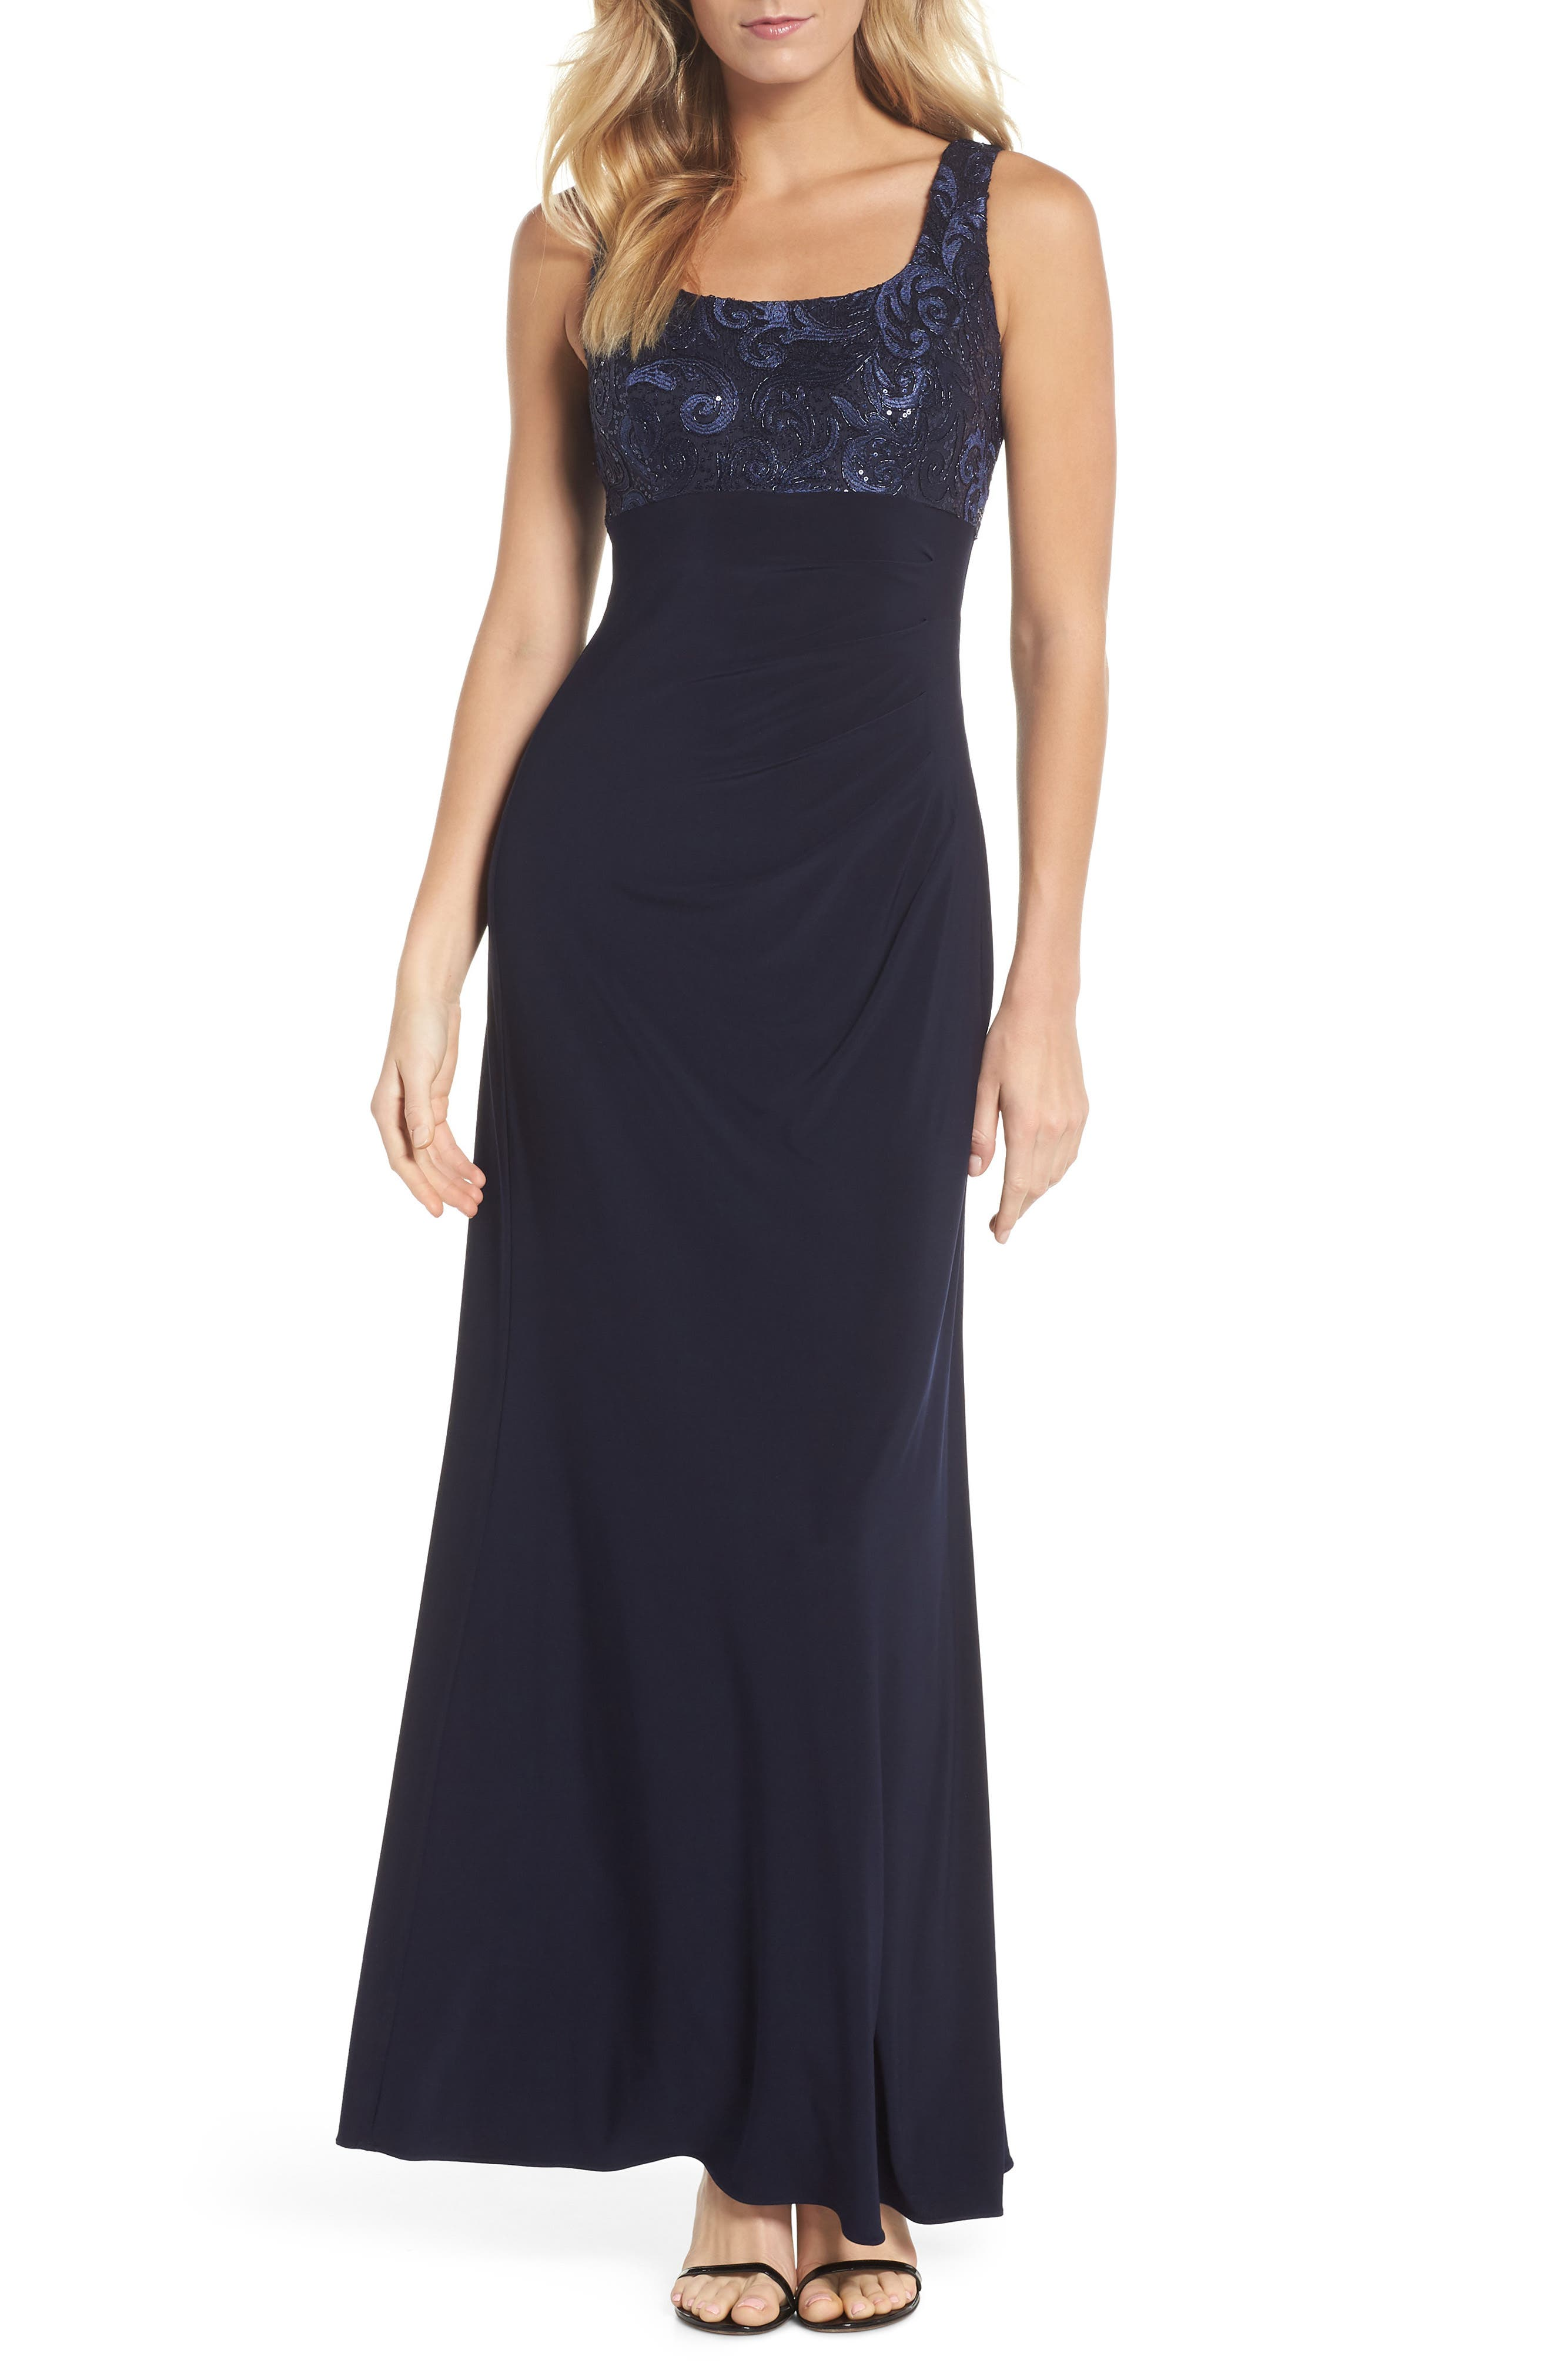 Sequin Embellished Gown with Bolero Jacket,                             Alternate thumbnail 2, color,                             Navy